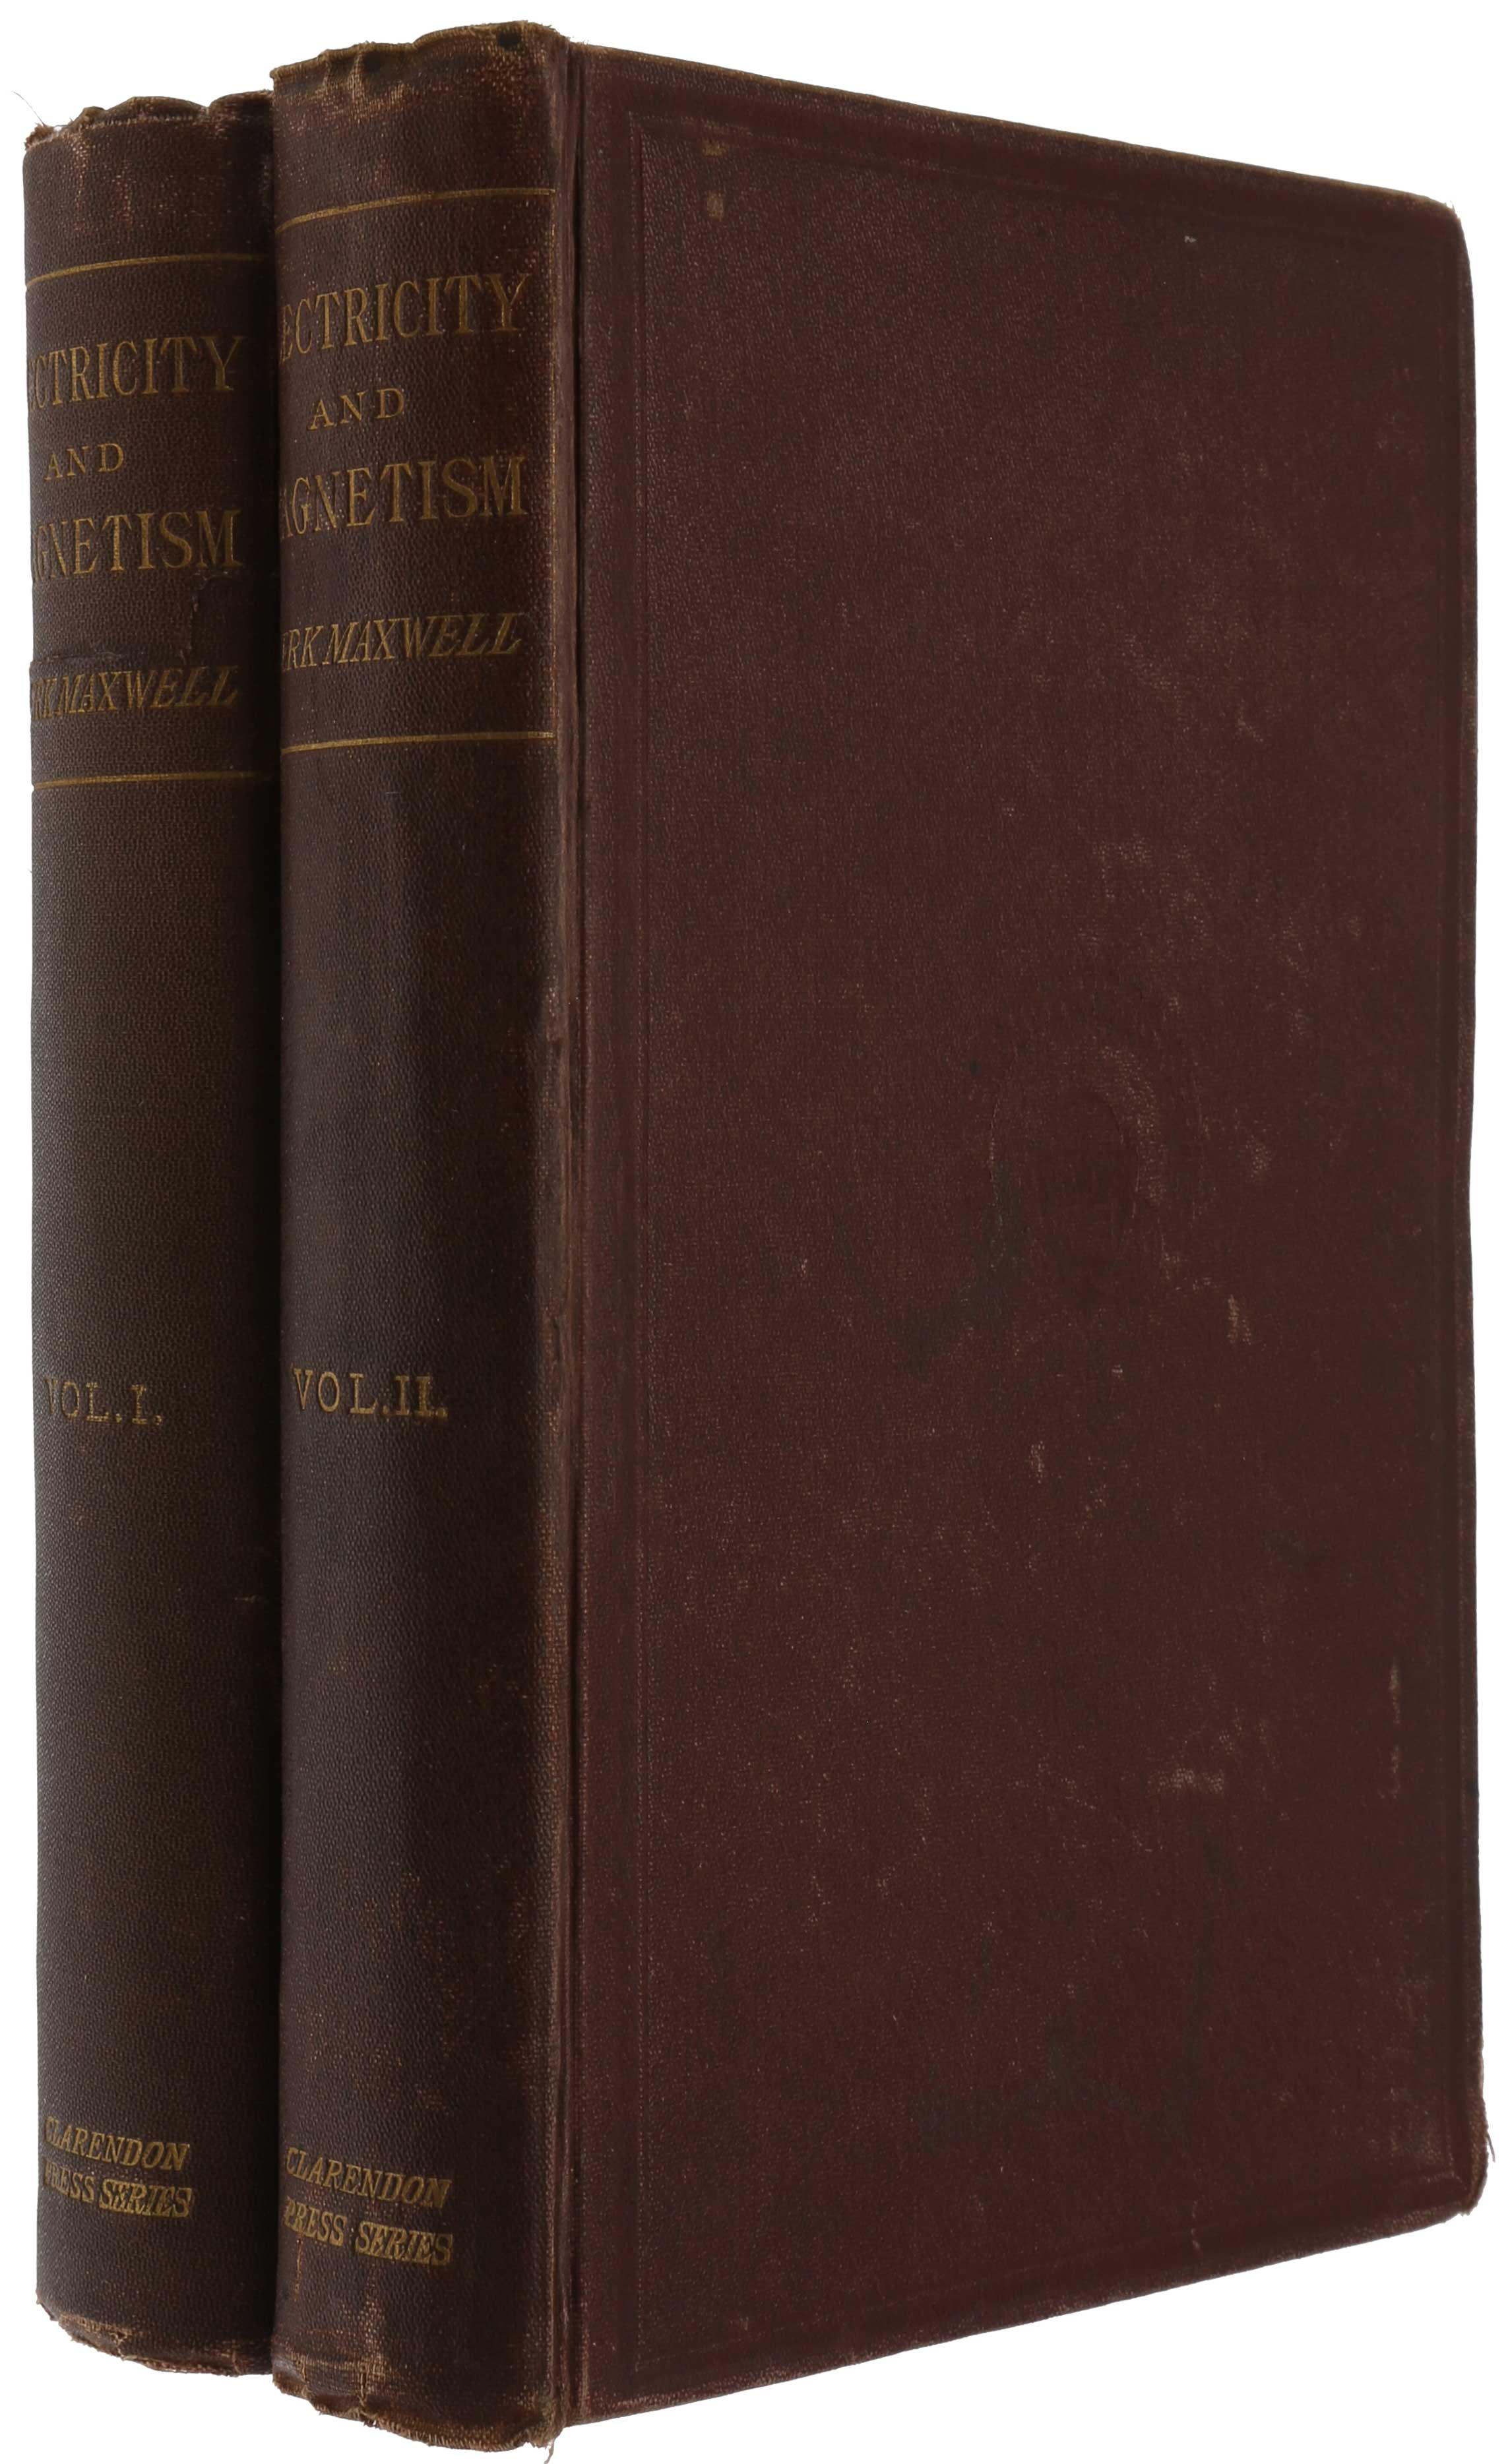 A Treatise on Electricity and Magnetism. James Clerk MAXWELL.